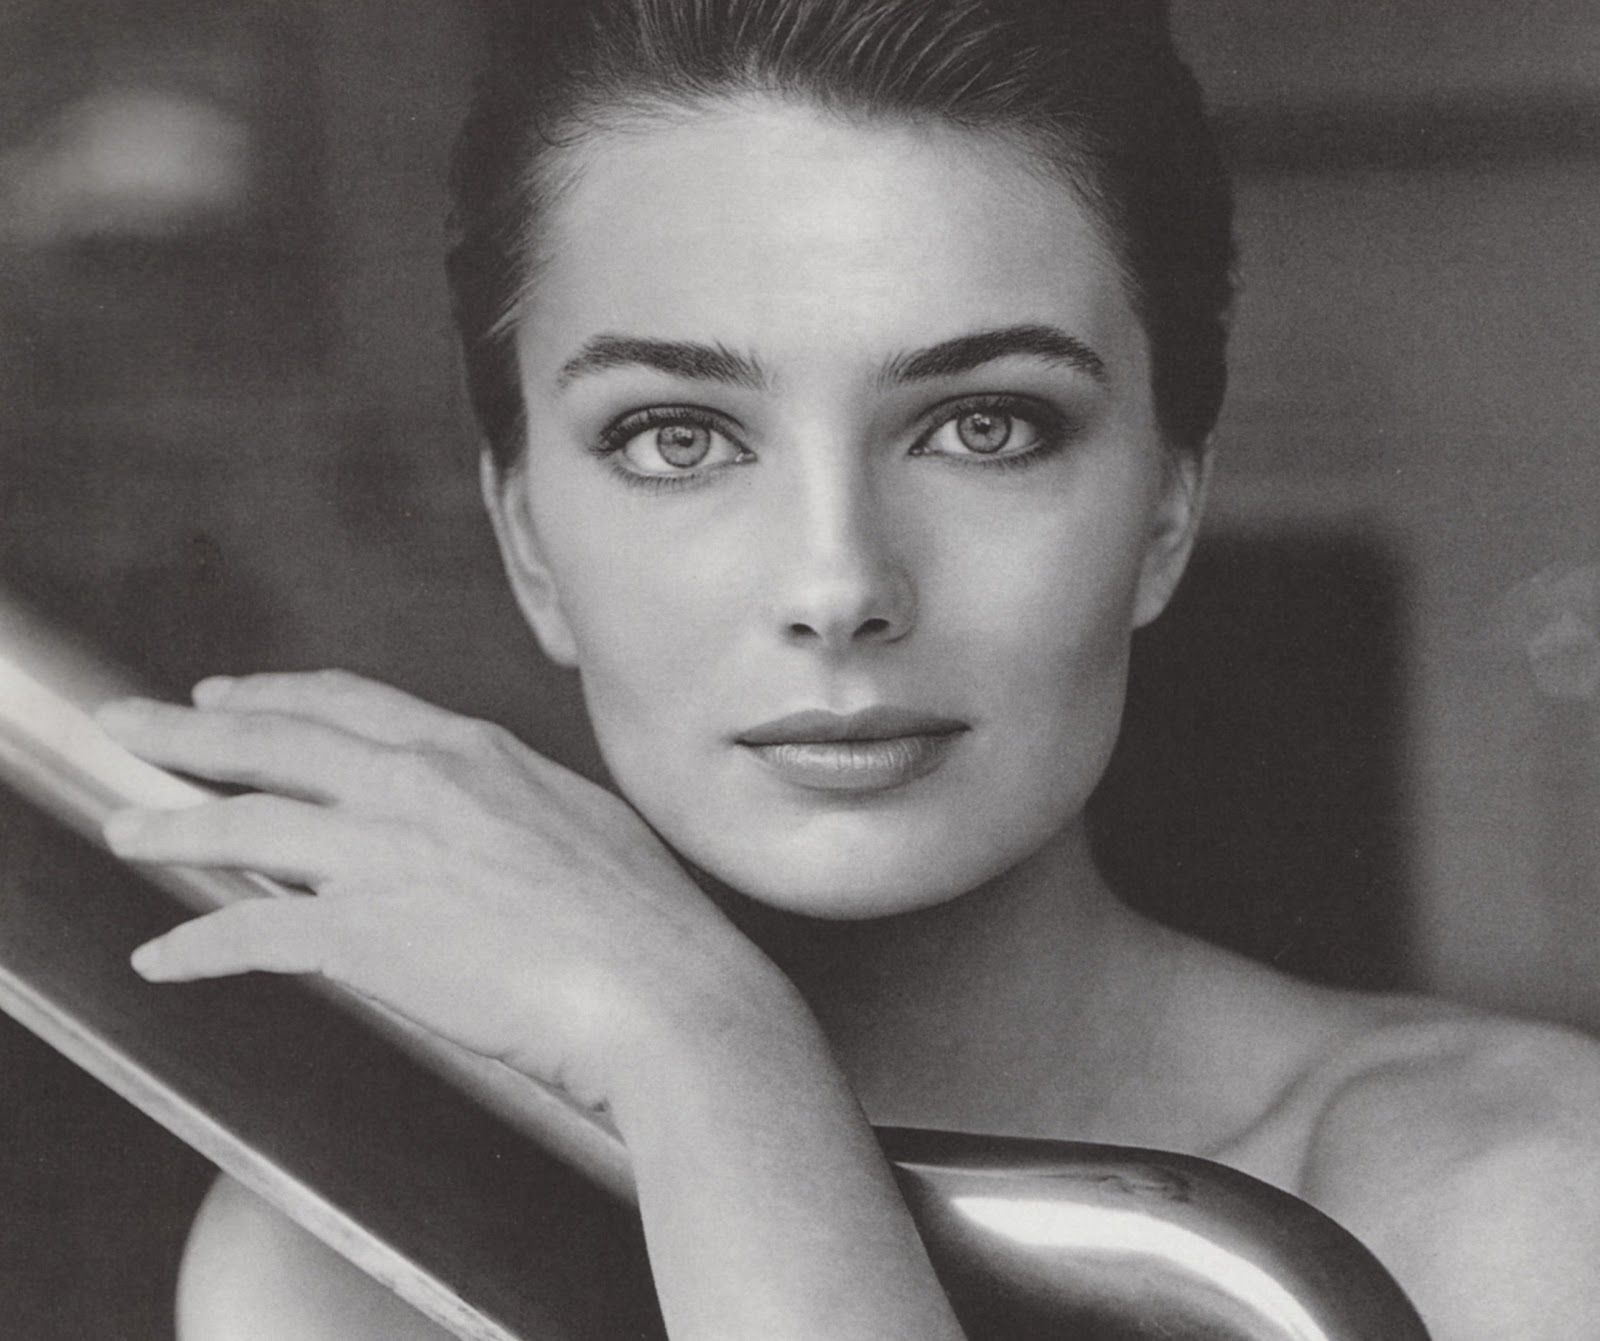 paulina porizkova youngpaulina porizkova 2016, paulina porizkova dallas, paulina porizkova 2014, paulina porizkova young, paulina porizkova estee lauder, paulina porizkova husband, paulina porizkova 1983, paulina porizkova height, paulina porizkova pic, paulina porizkova family, paulina porizkova 1980, paulina porizkova husband ric ocasek, paulina porizkova sons, paulina porizkova pictures, paulina porizkova wiki, paulina porizkova playboy august 1987, paulina porizkova instagram, paulina porizkova sports illustrated, paulina porizkova arizona dream, paulina porizkova desperate housewives